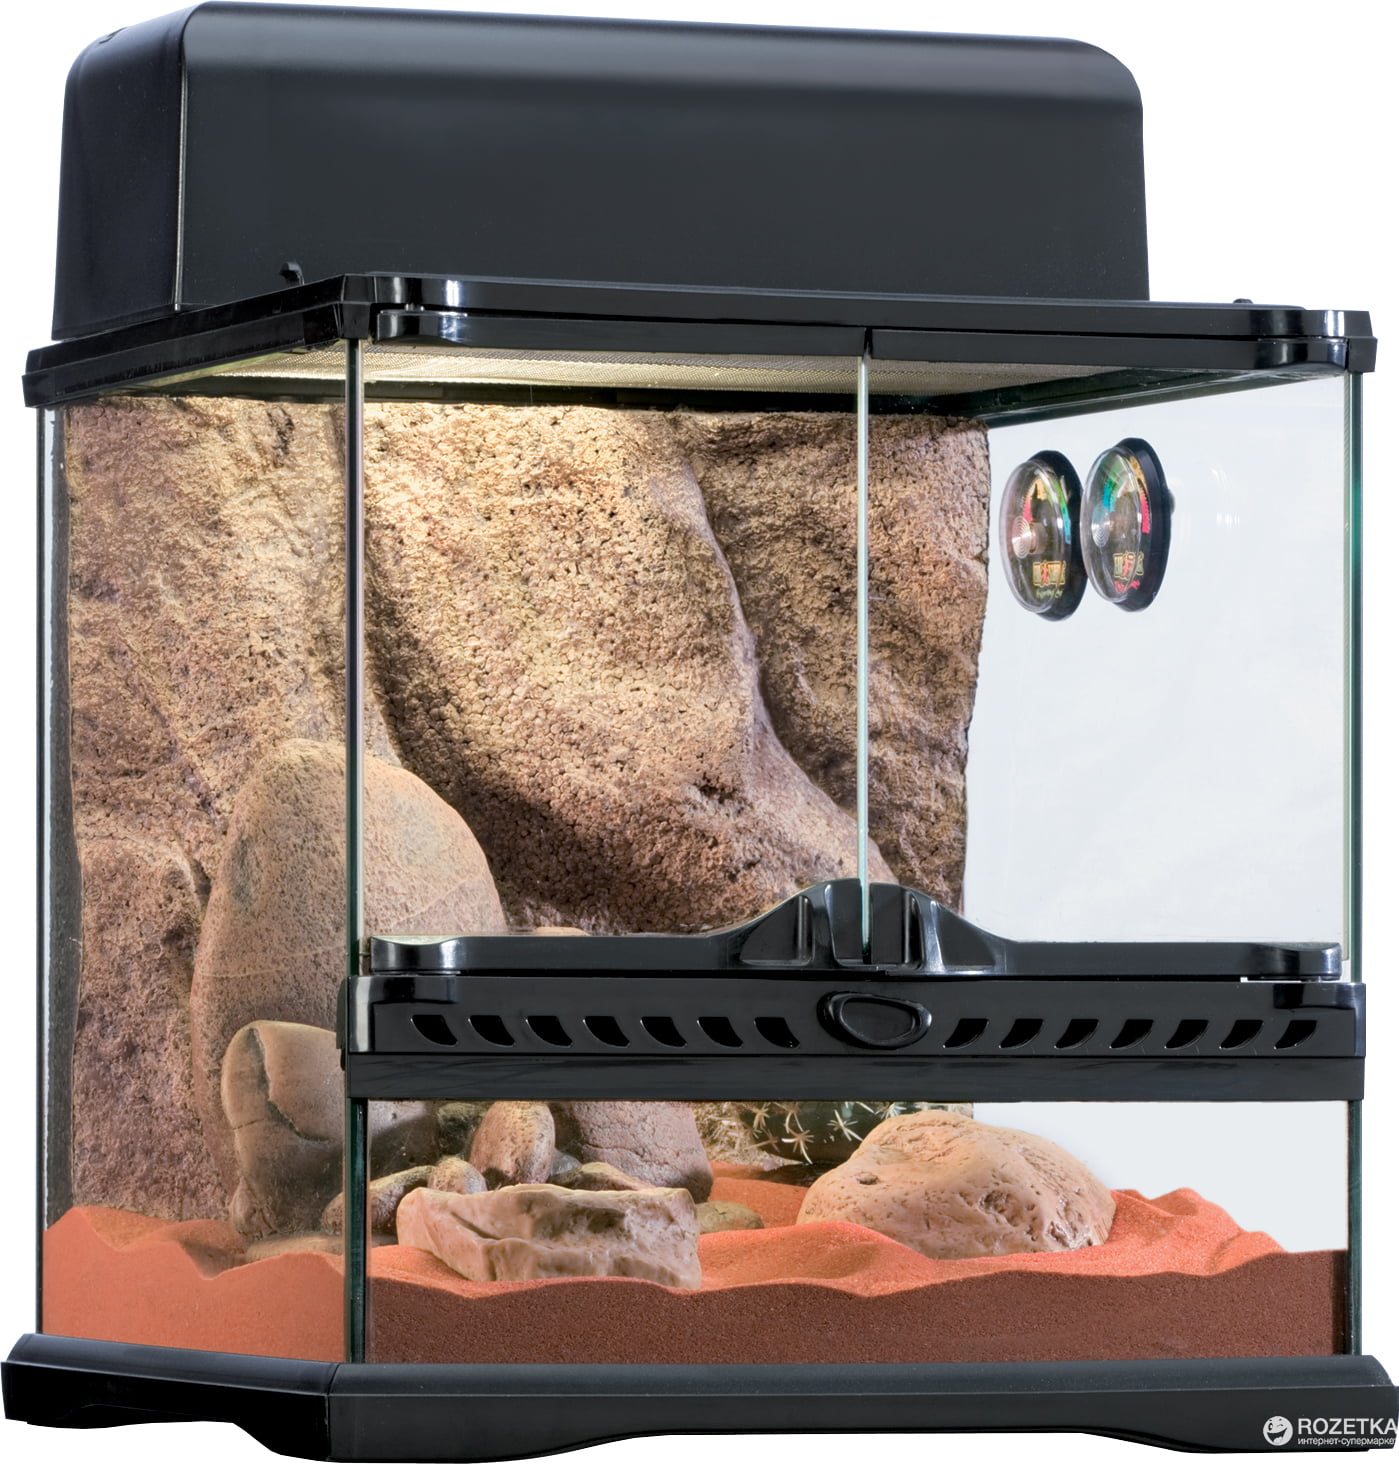 Exo Terra Small 7.5-Gallon Desert Reptile Habitat Kit by Hagen